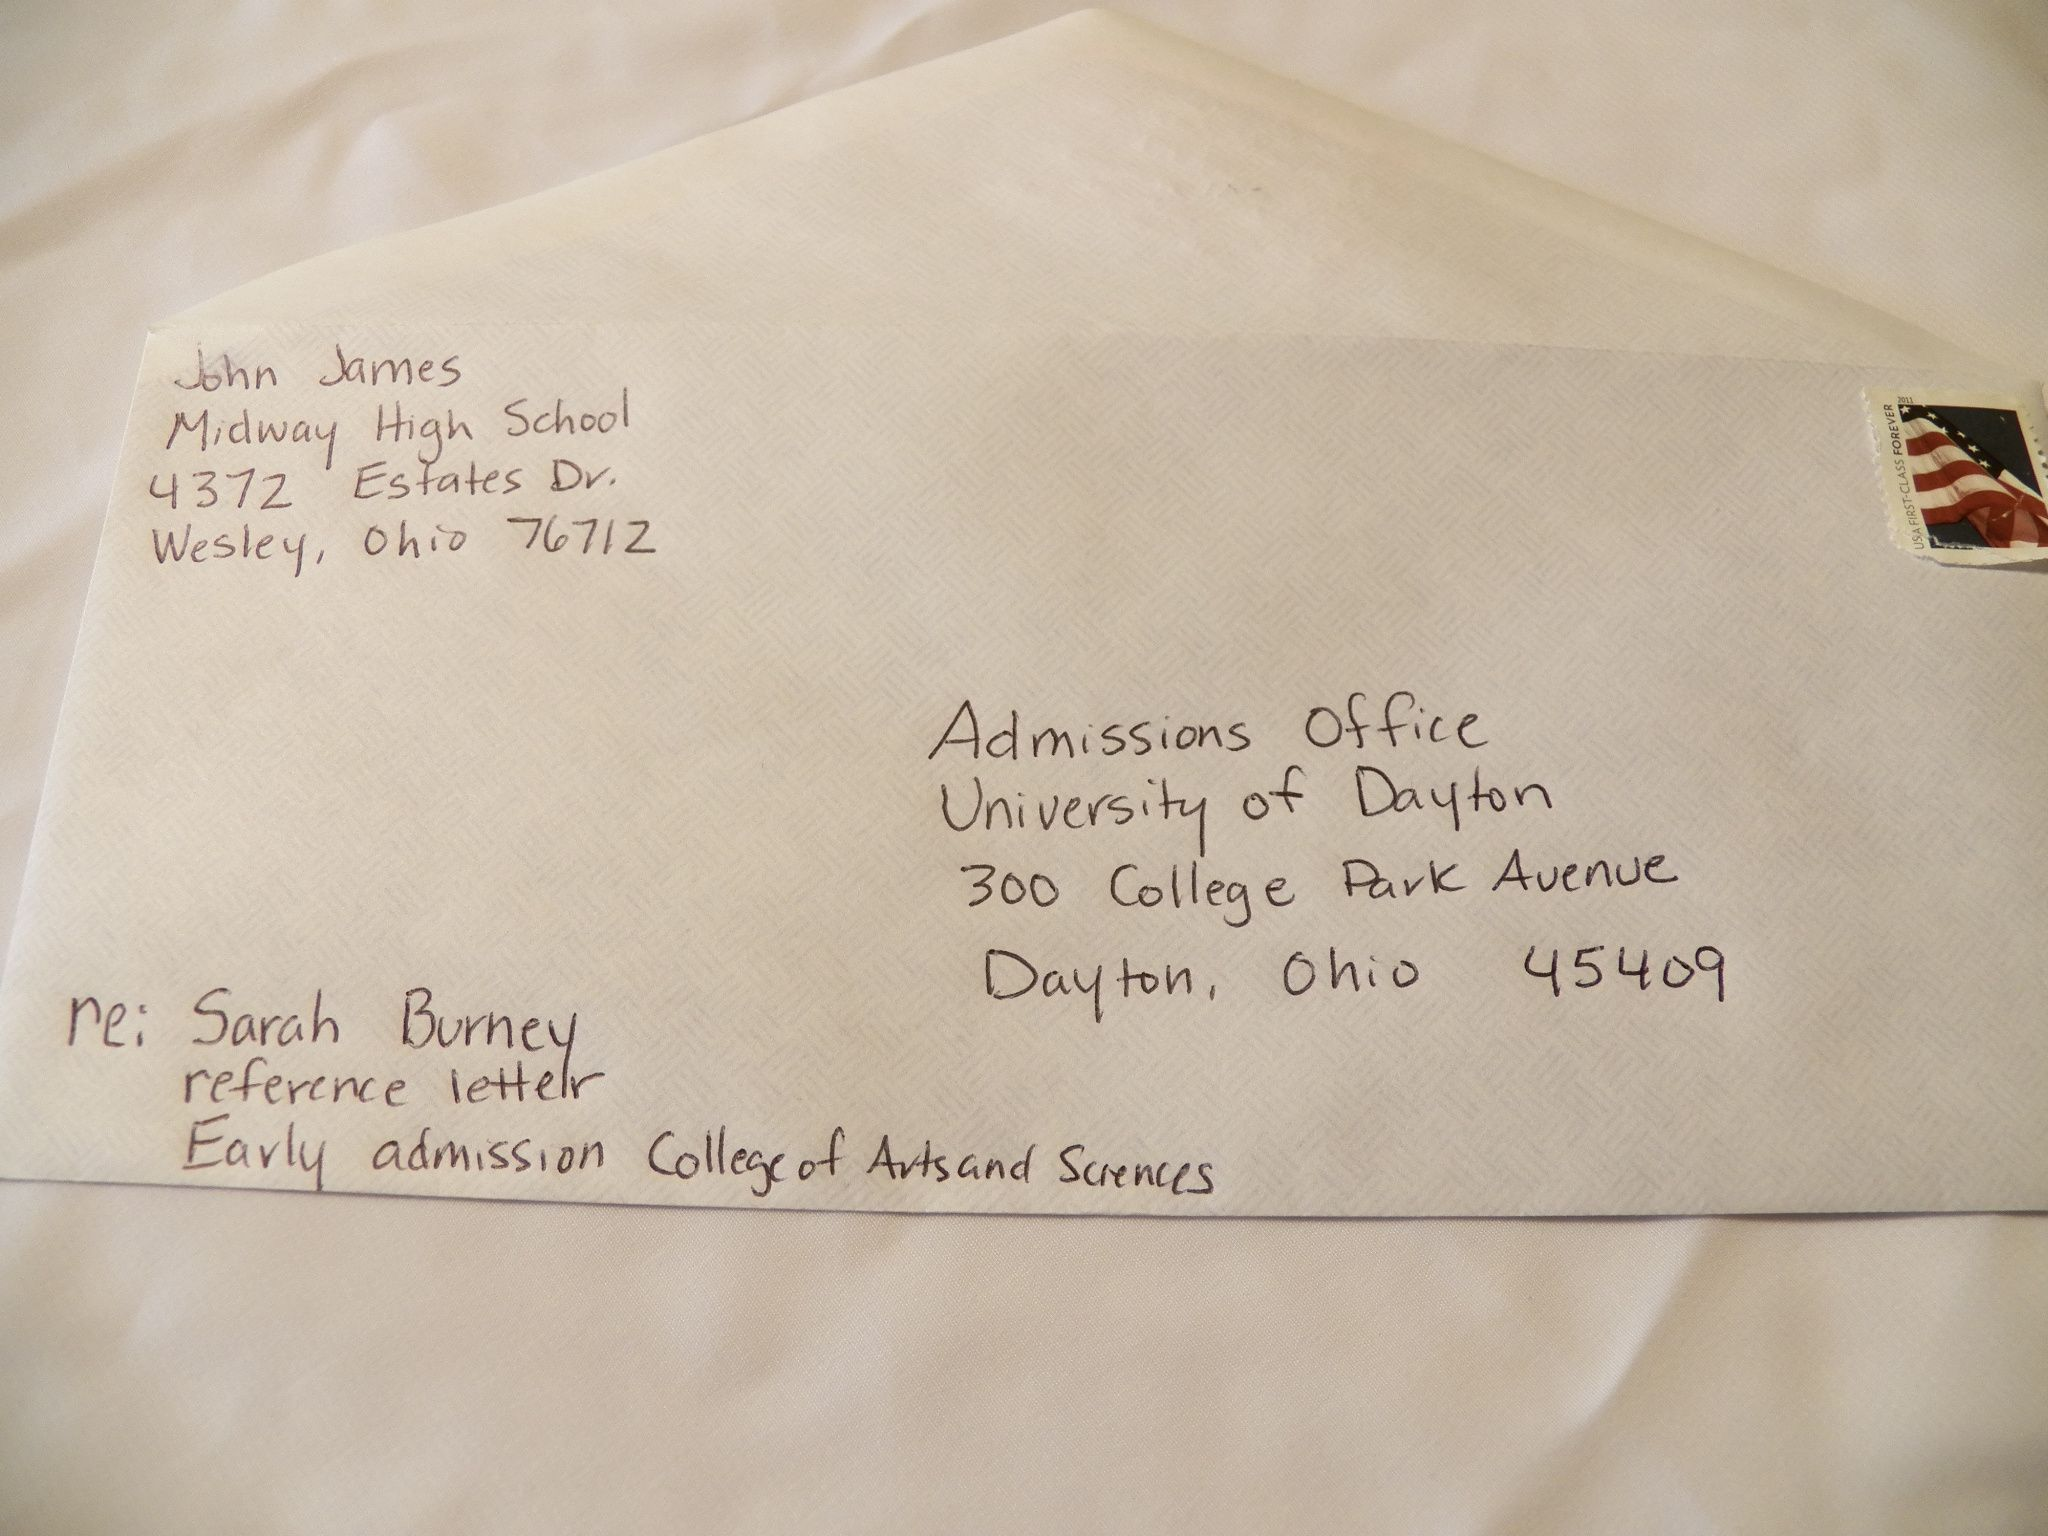 how to address envelopes for college recommendation letters how how to address envelopes for college recommendation letters